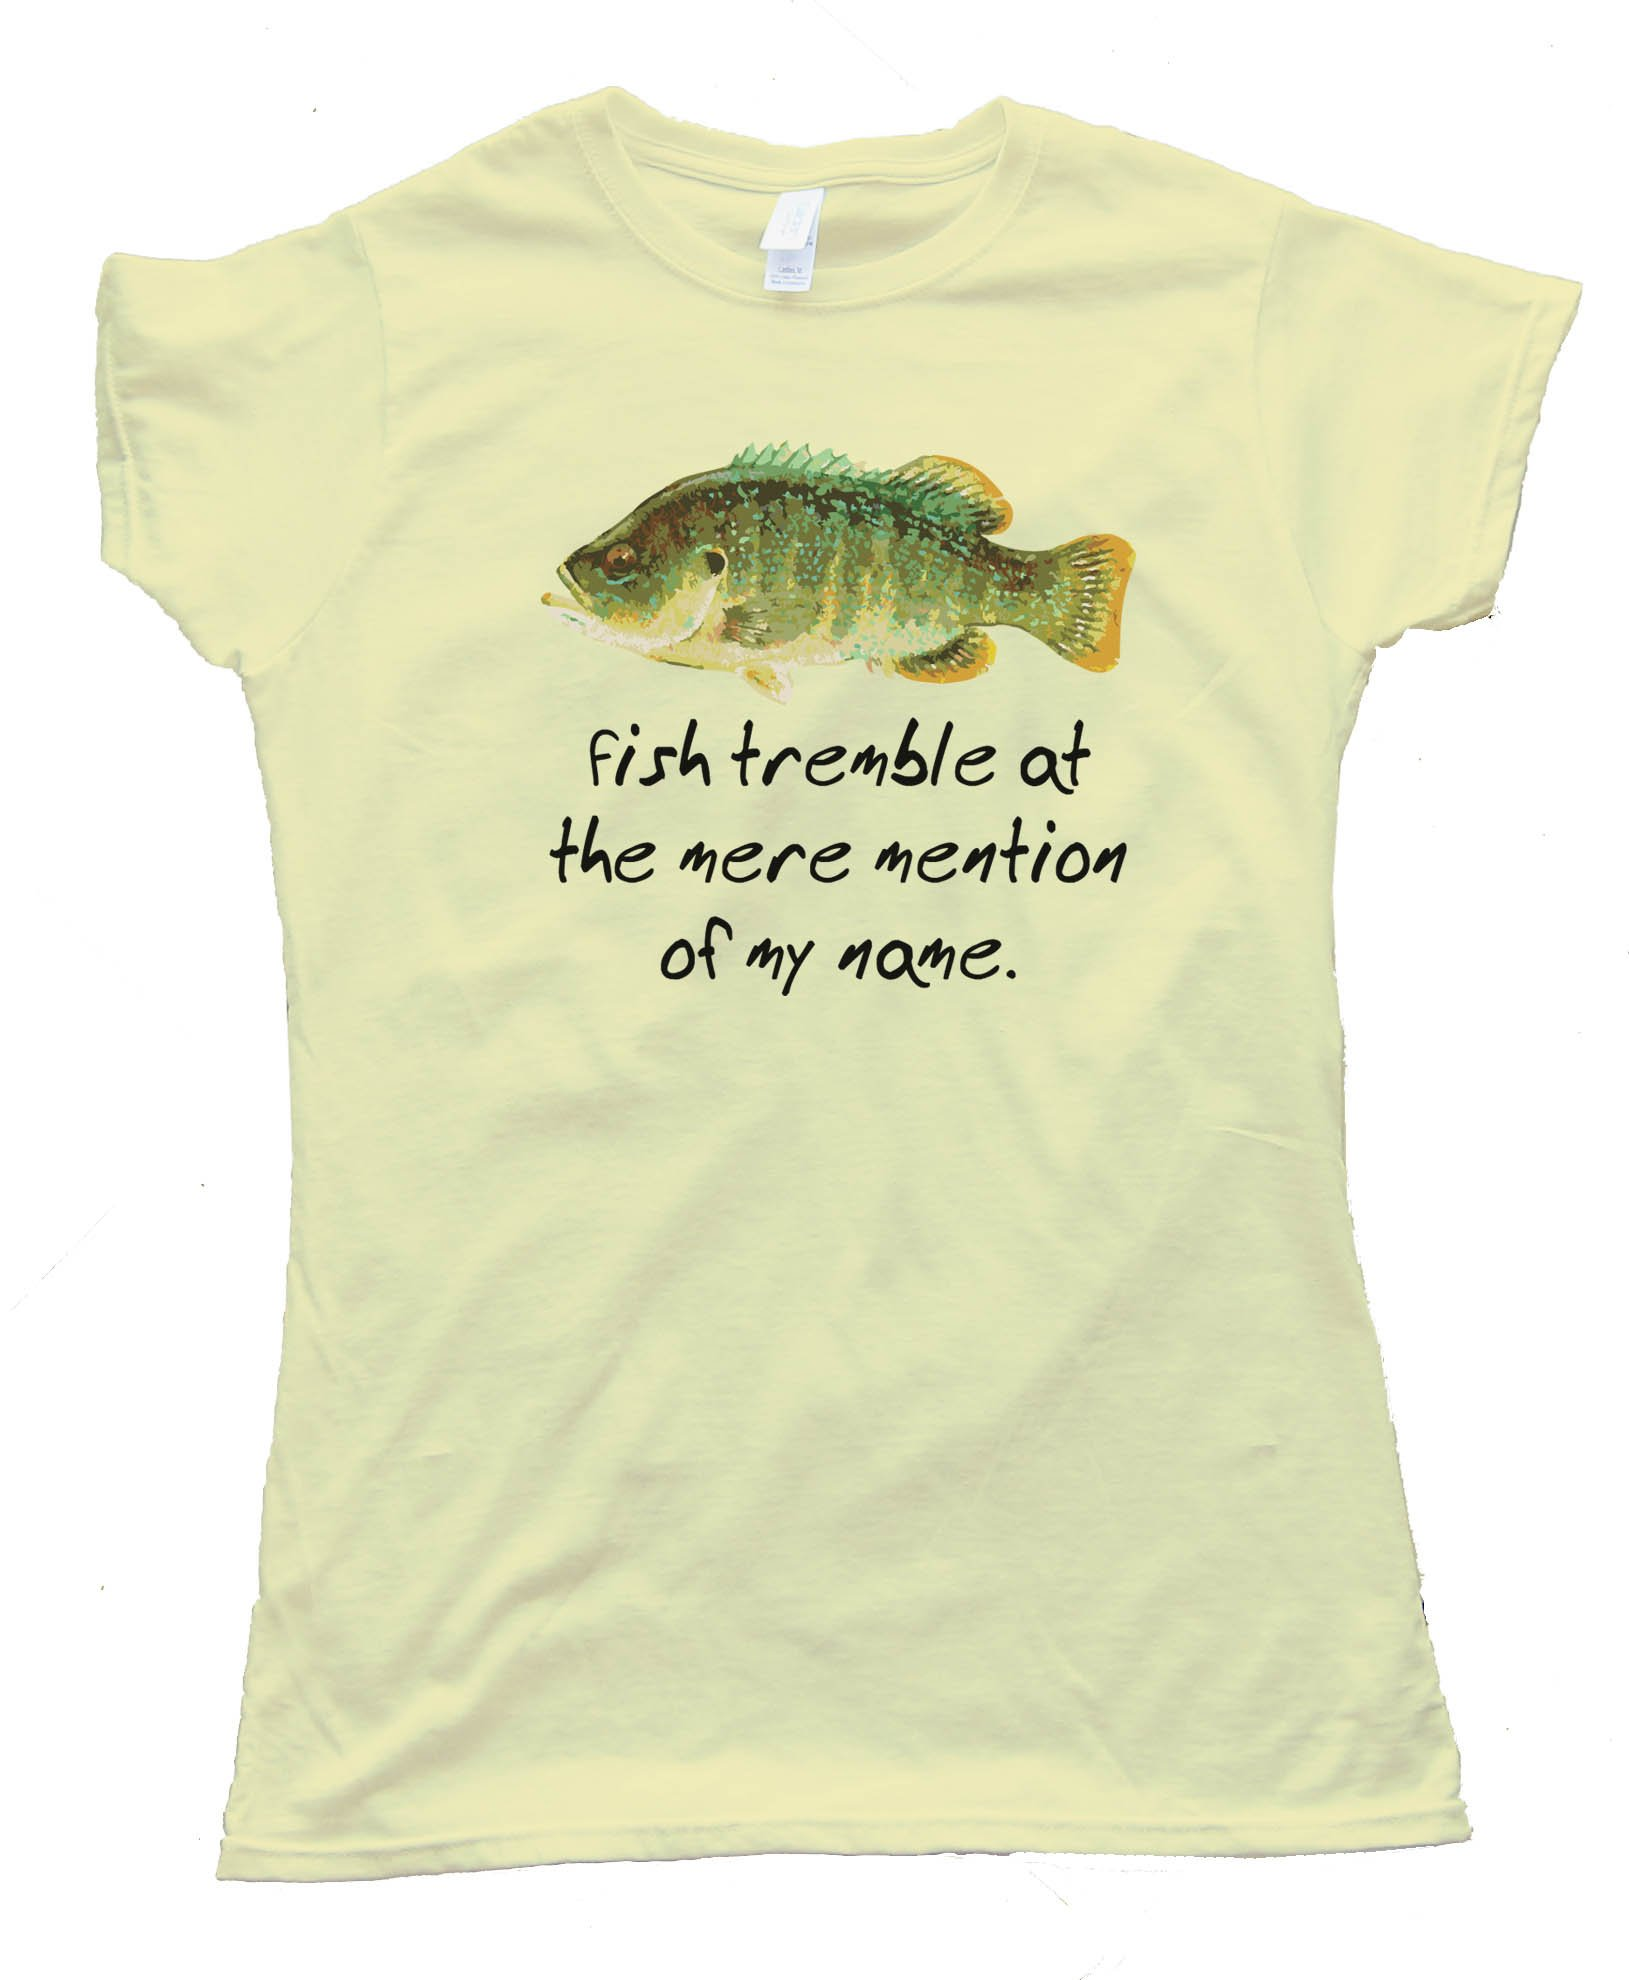 Fish Tremble At The Mere Mention Of My Name - Tee Shirt